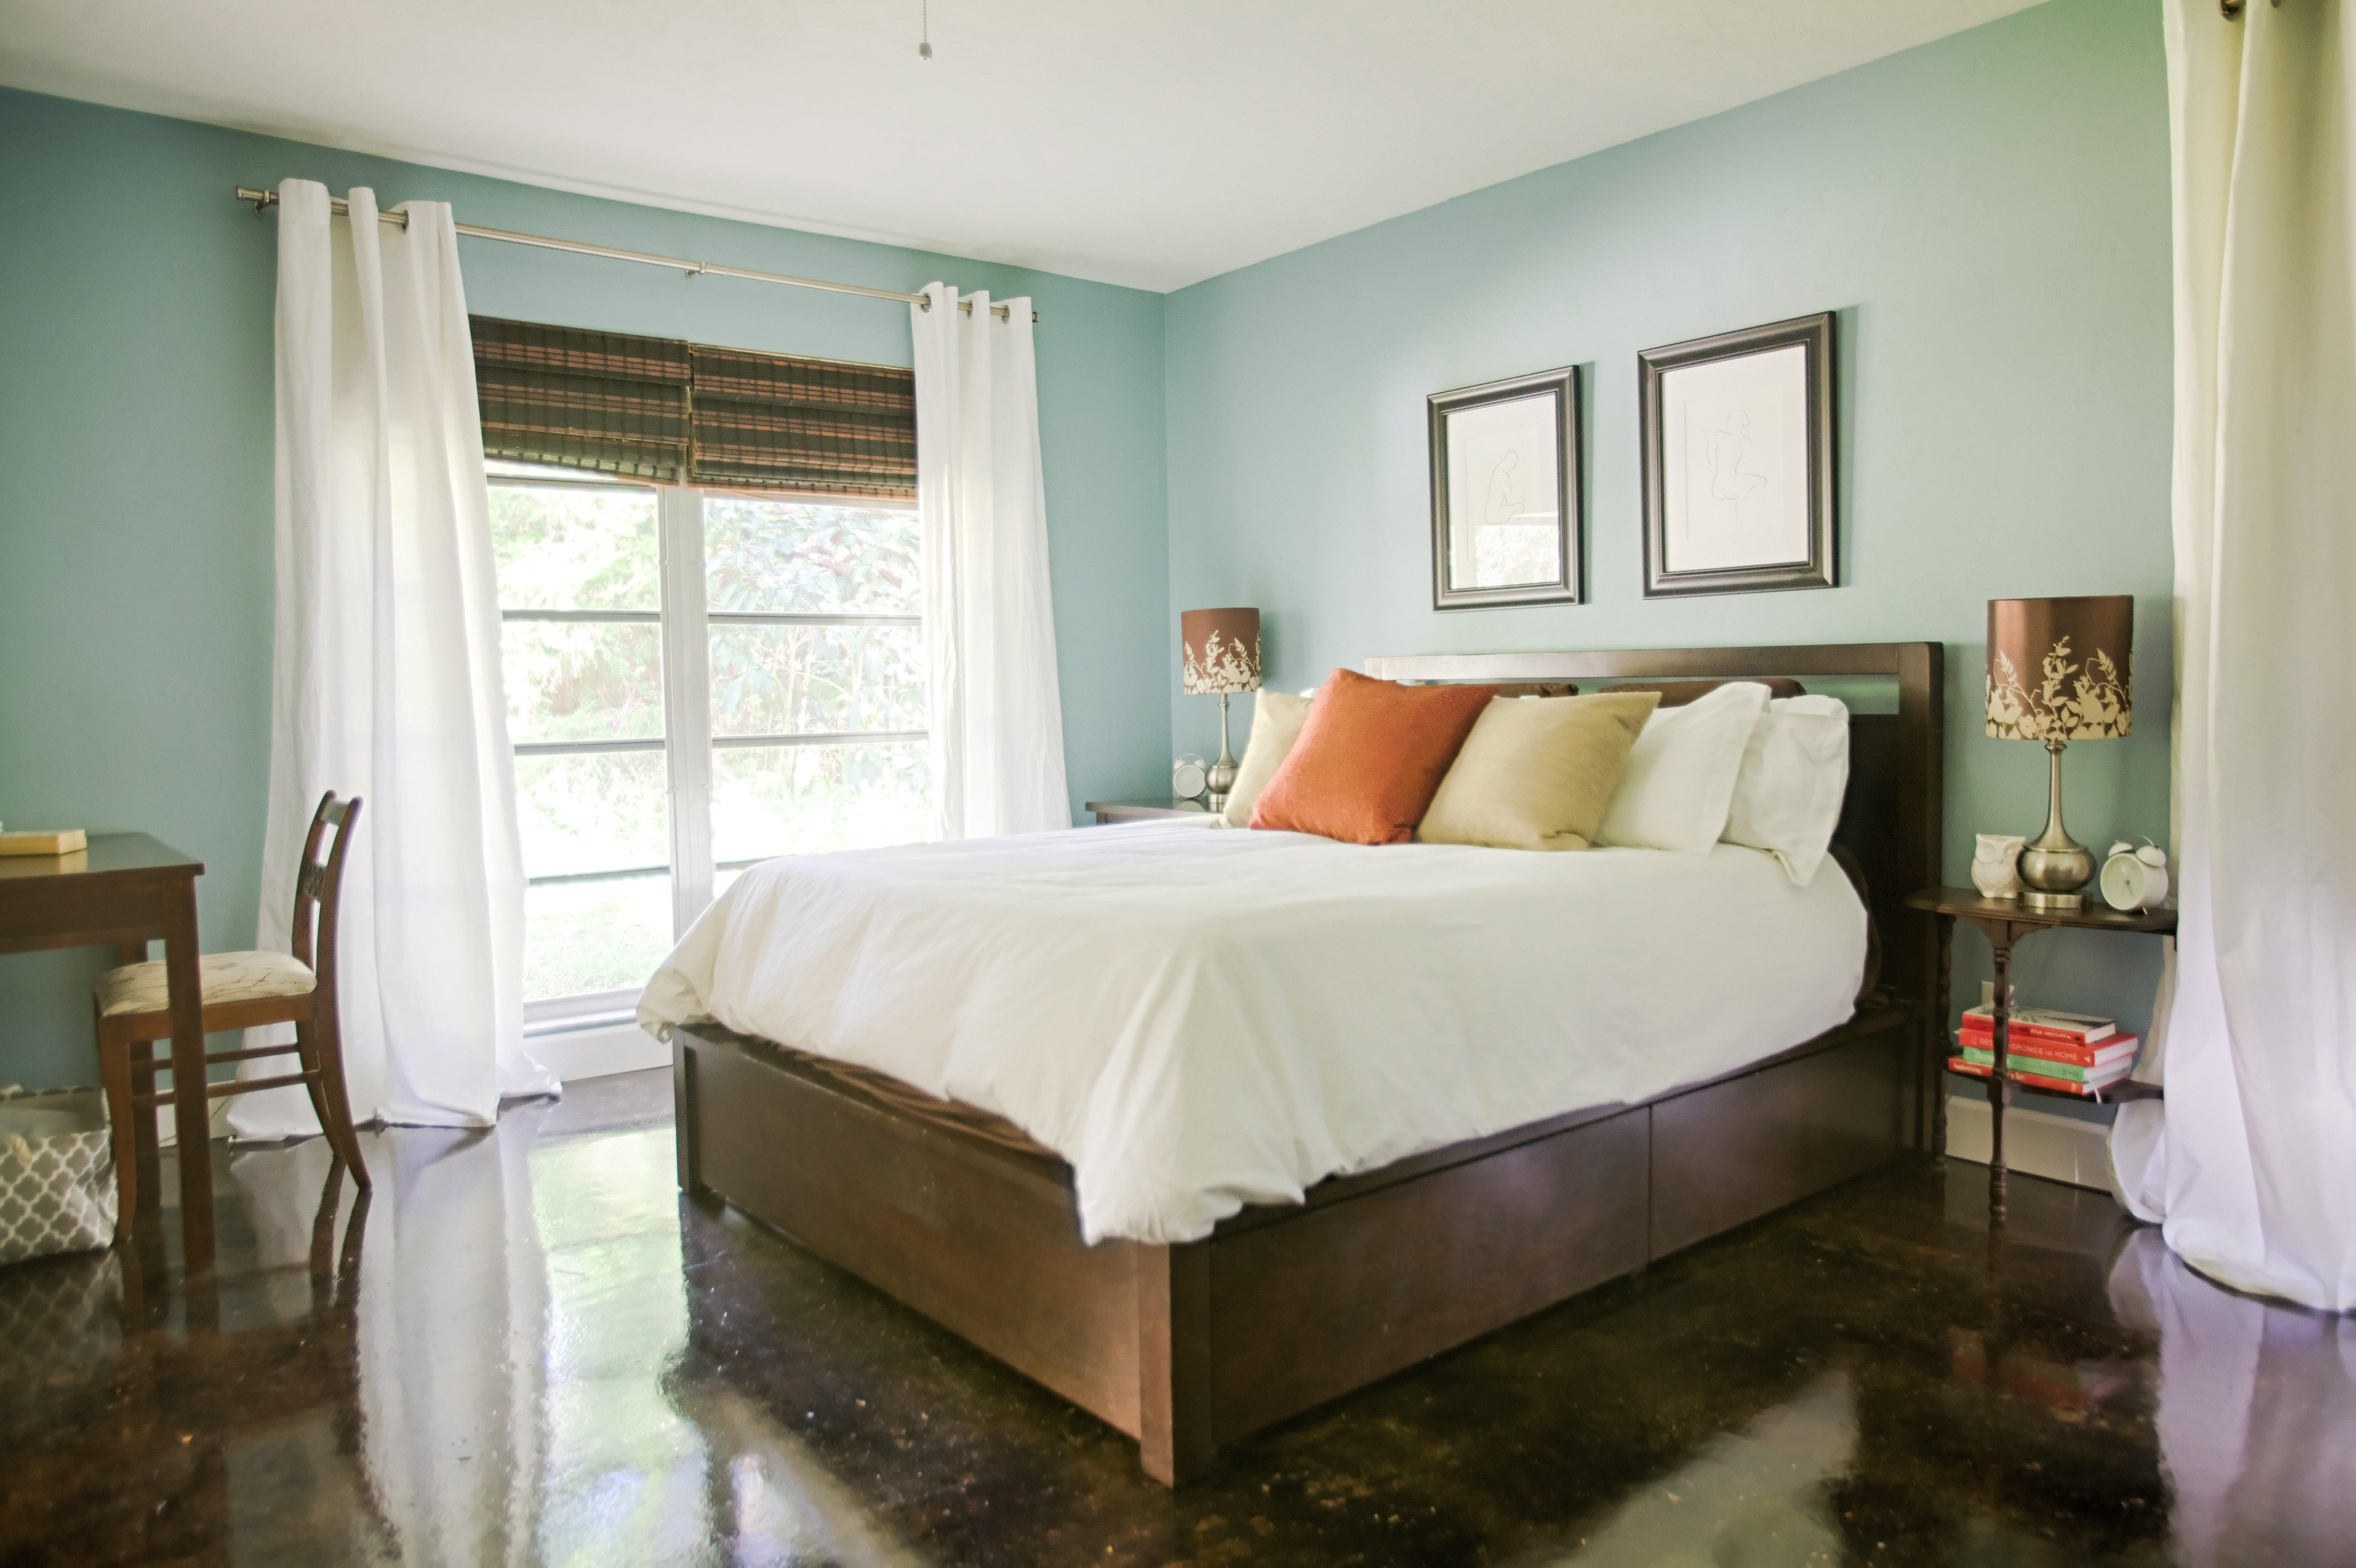 Master Bedroom painted in Benjamin Moore's Buxton Blue